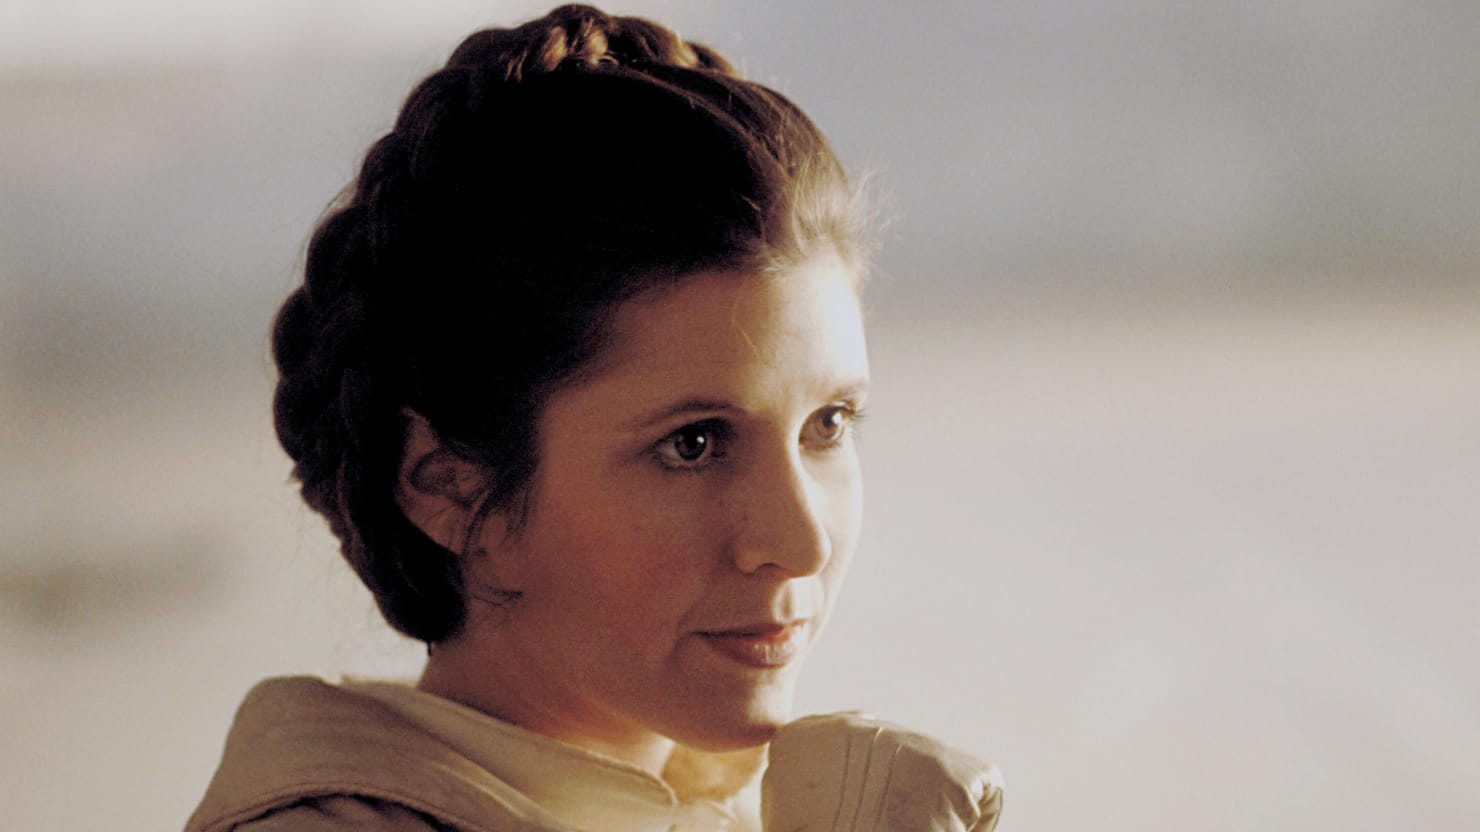 More Than Princess Leia: Carrie Fisher's Beautifully Tumultuous, Accomplished, Hilarious Life